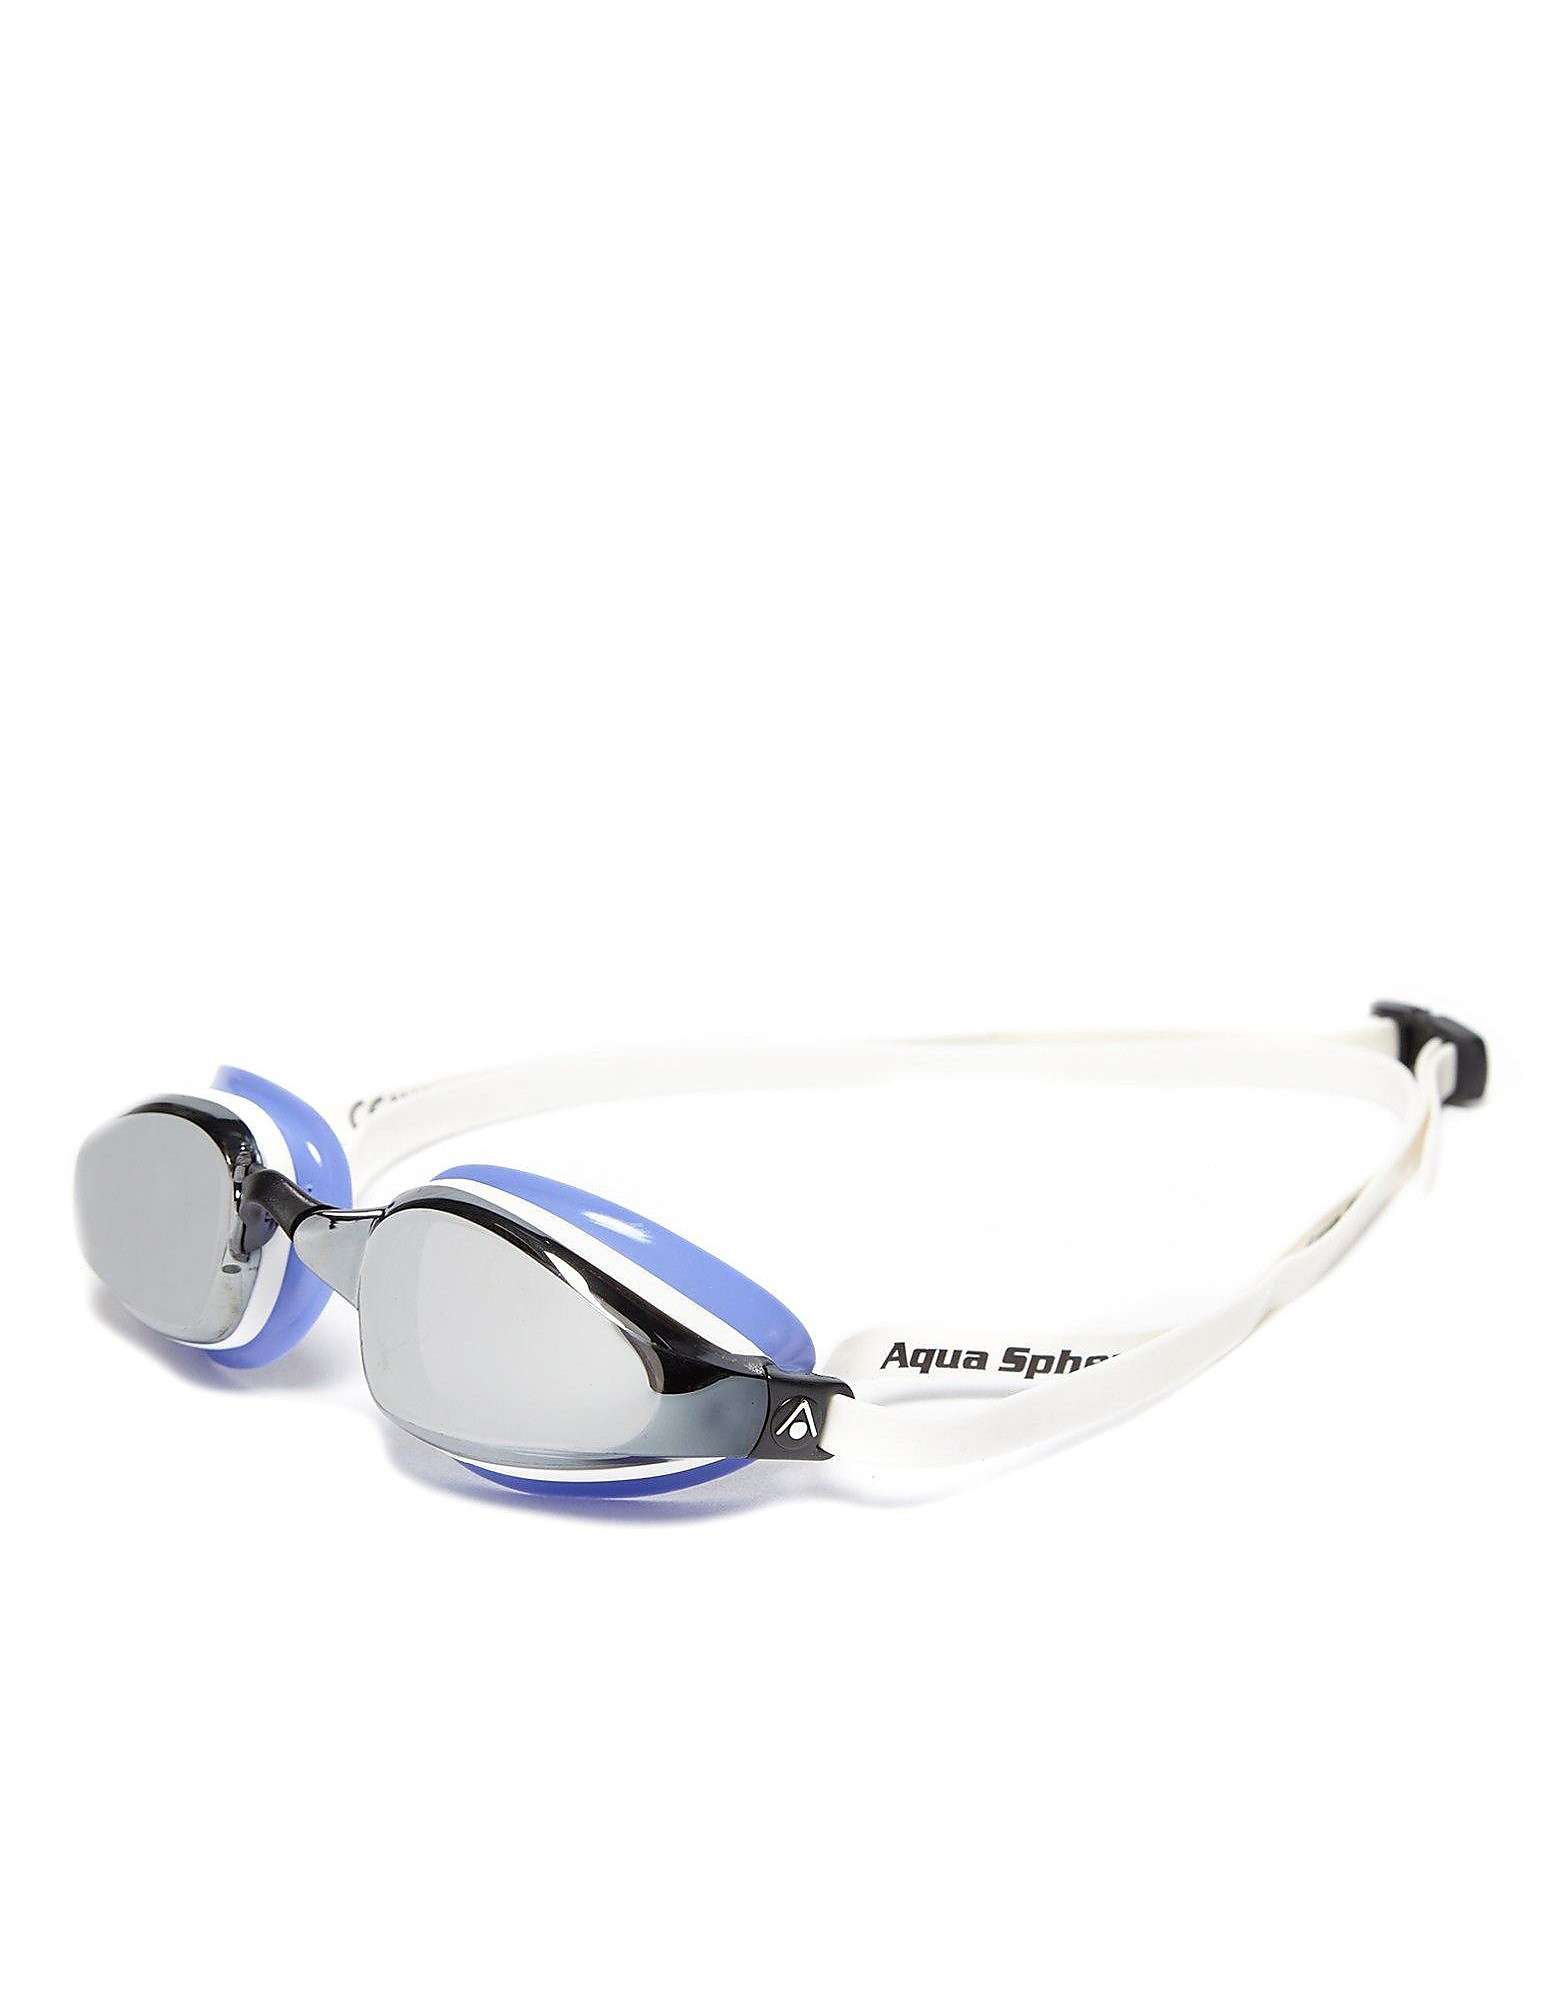 Aqua Sphere K180 Goggles (Mirrored Lens)